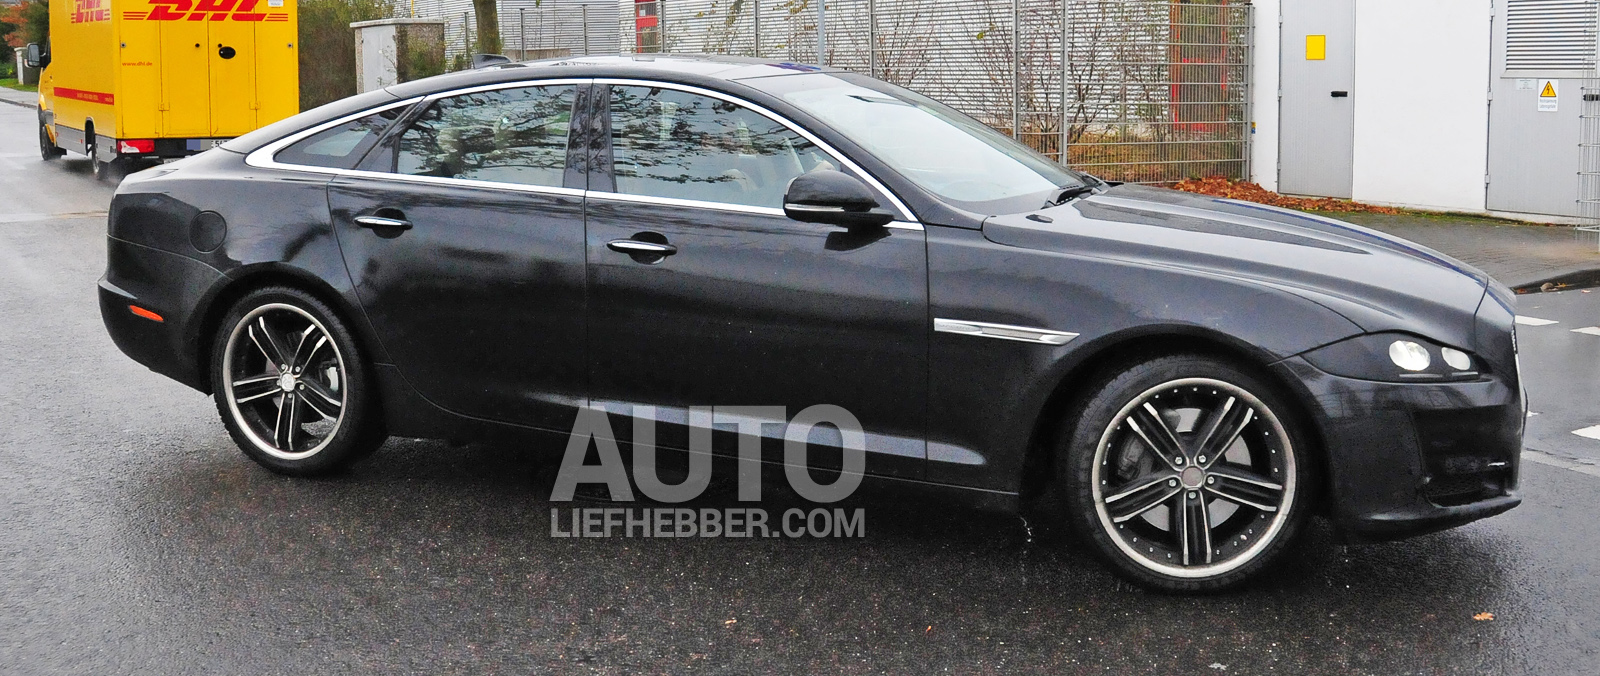 Dit is de Jaguar XJ Facelift